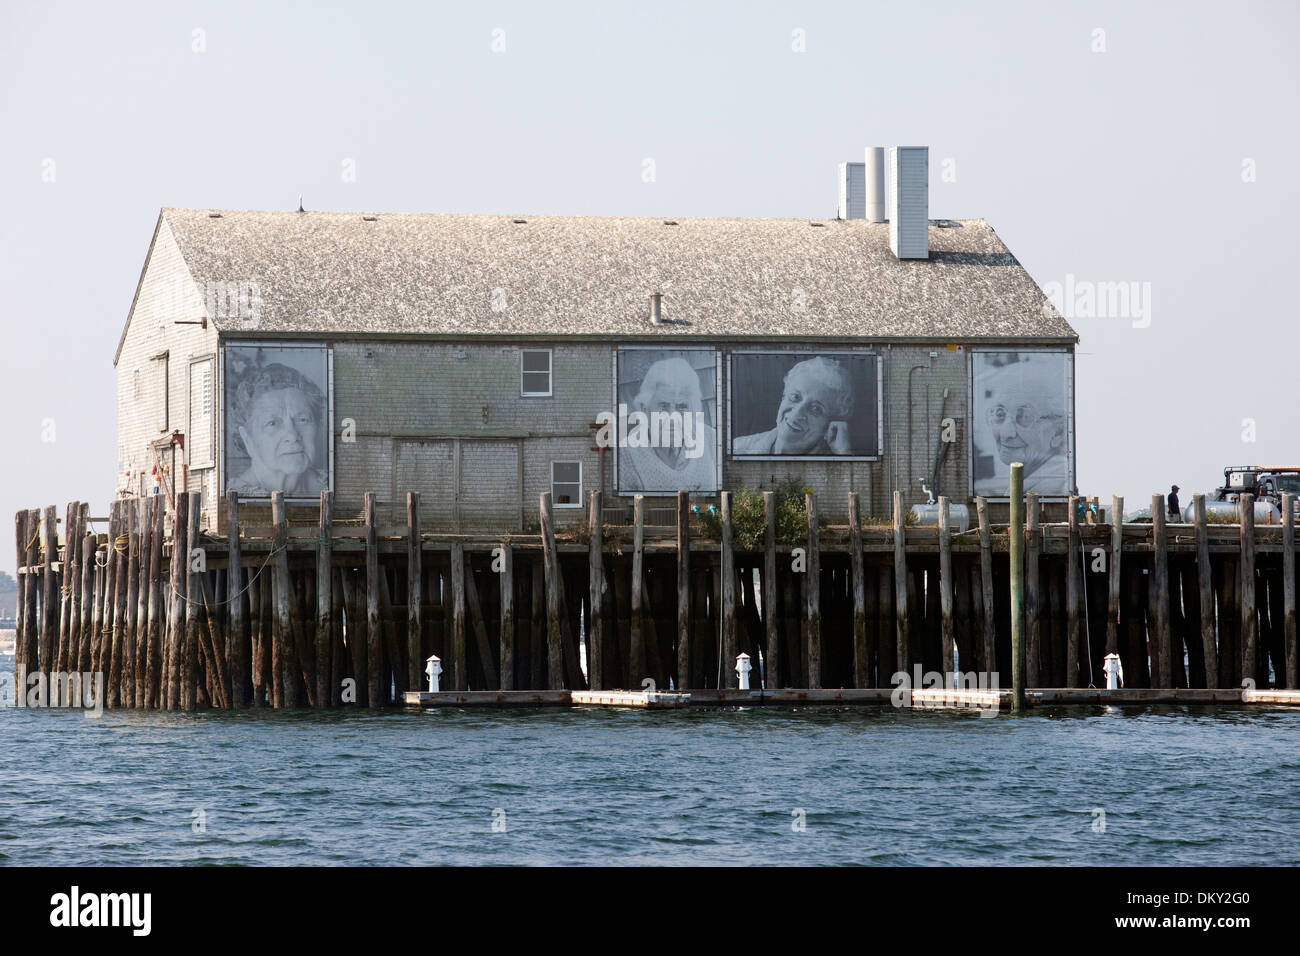 They Also Faced The Sea Art Instillation, Portuguese Women, Provincetown, Massachusetts - Stock Image